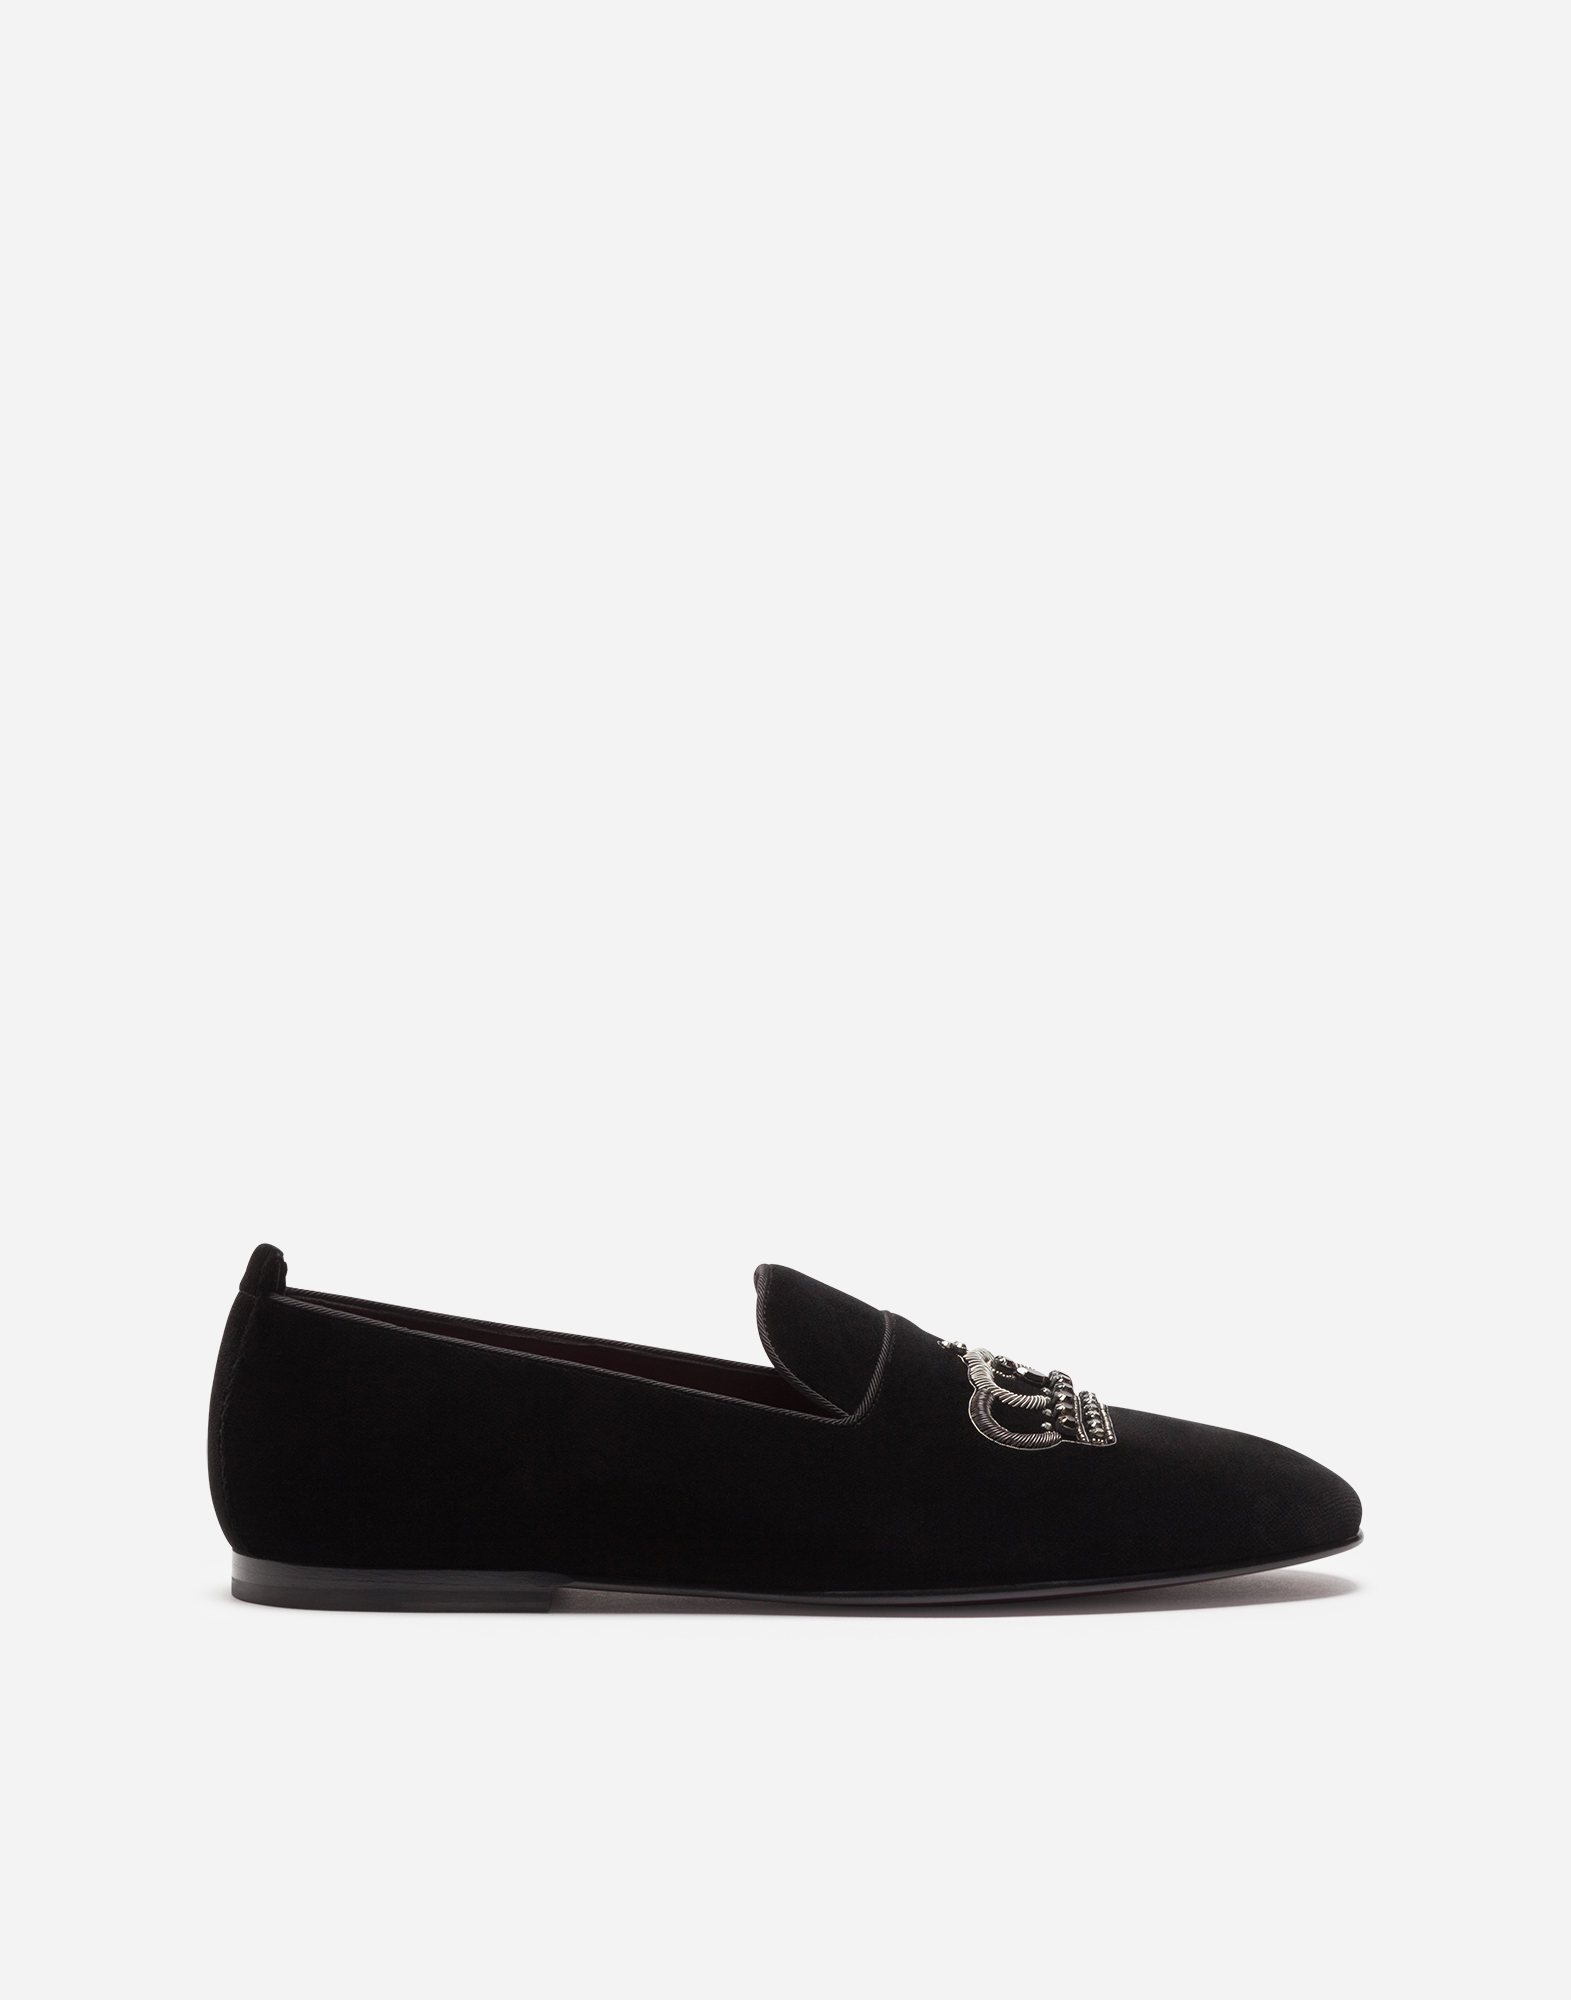 Dolce & Gabbana VELVET SLIPPERS WITH CROWN EMBROIDERY